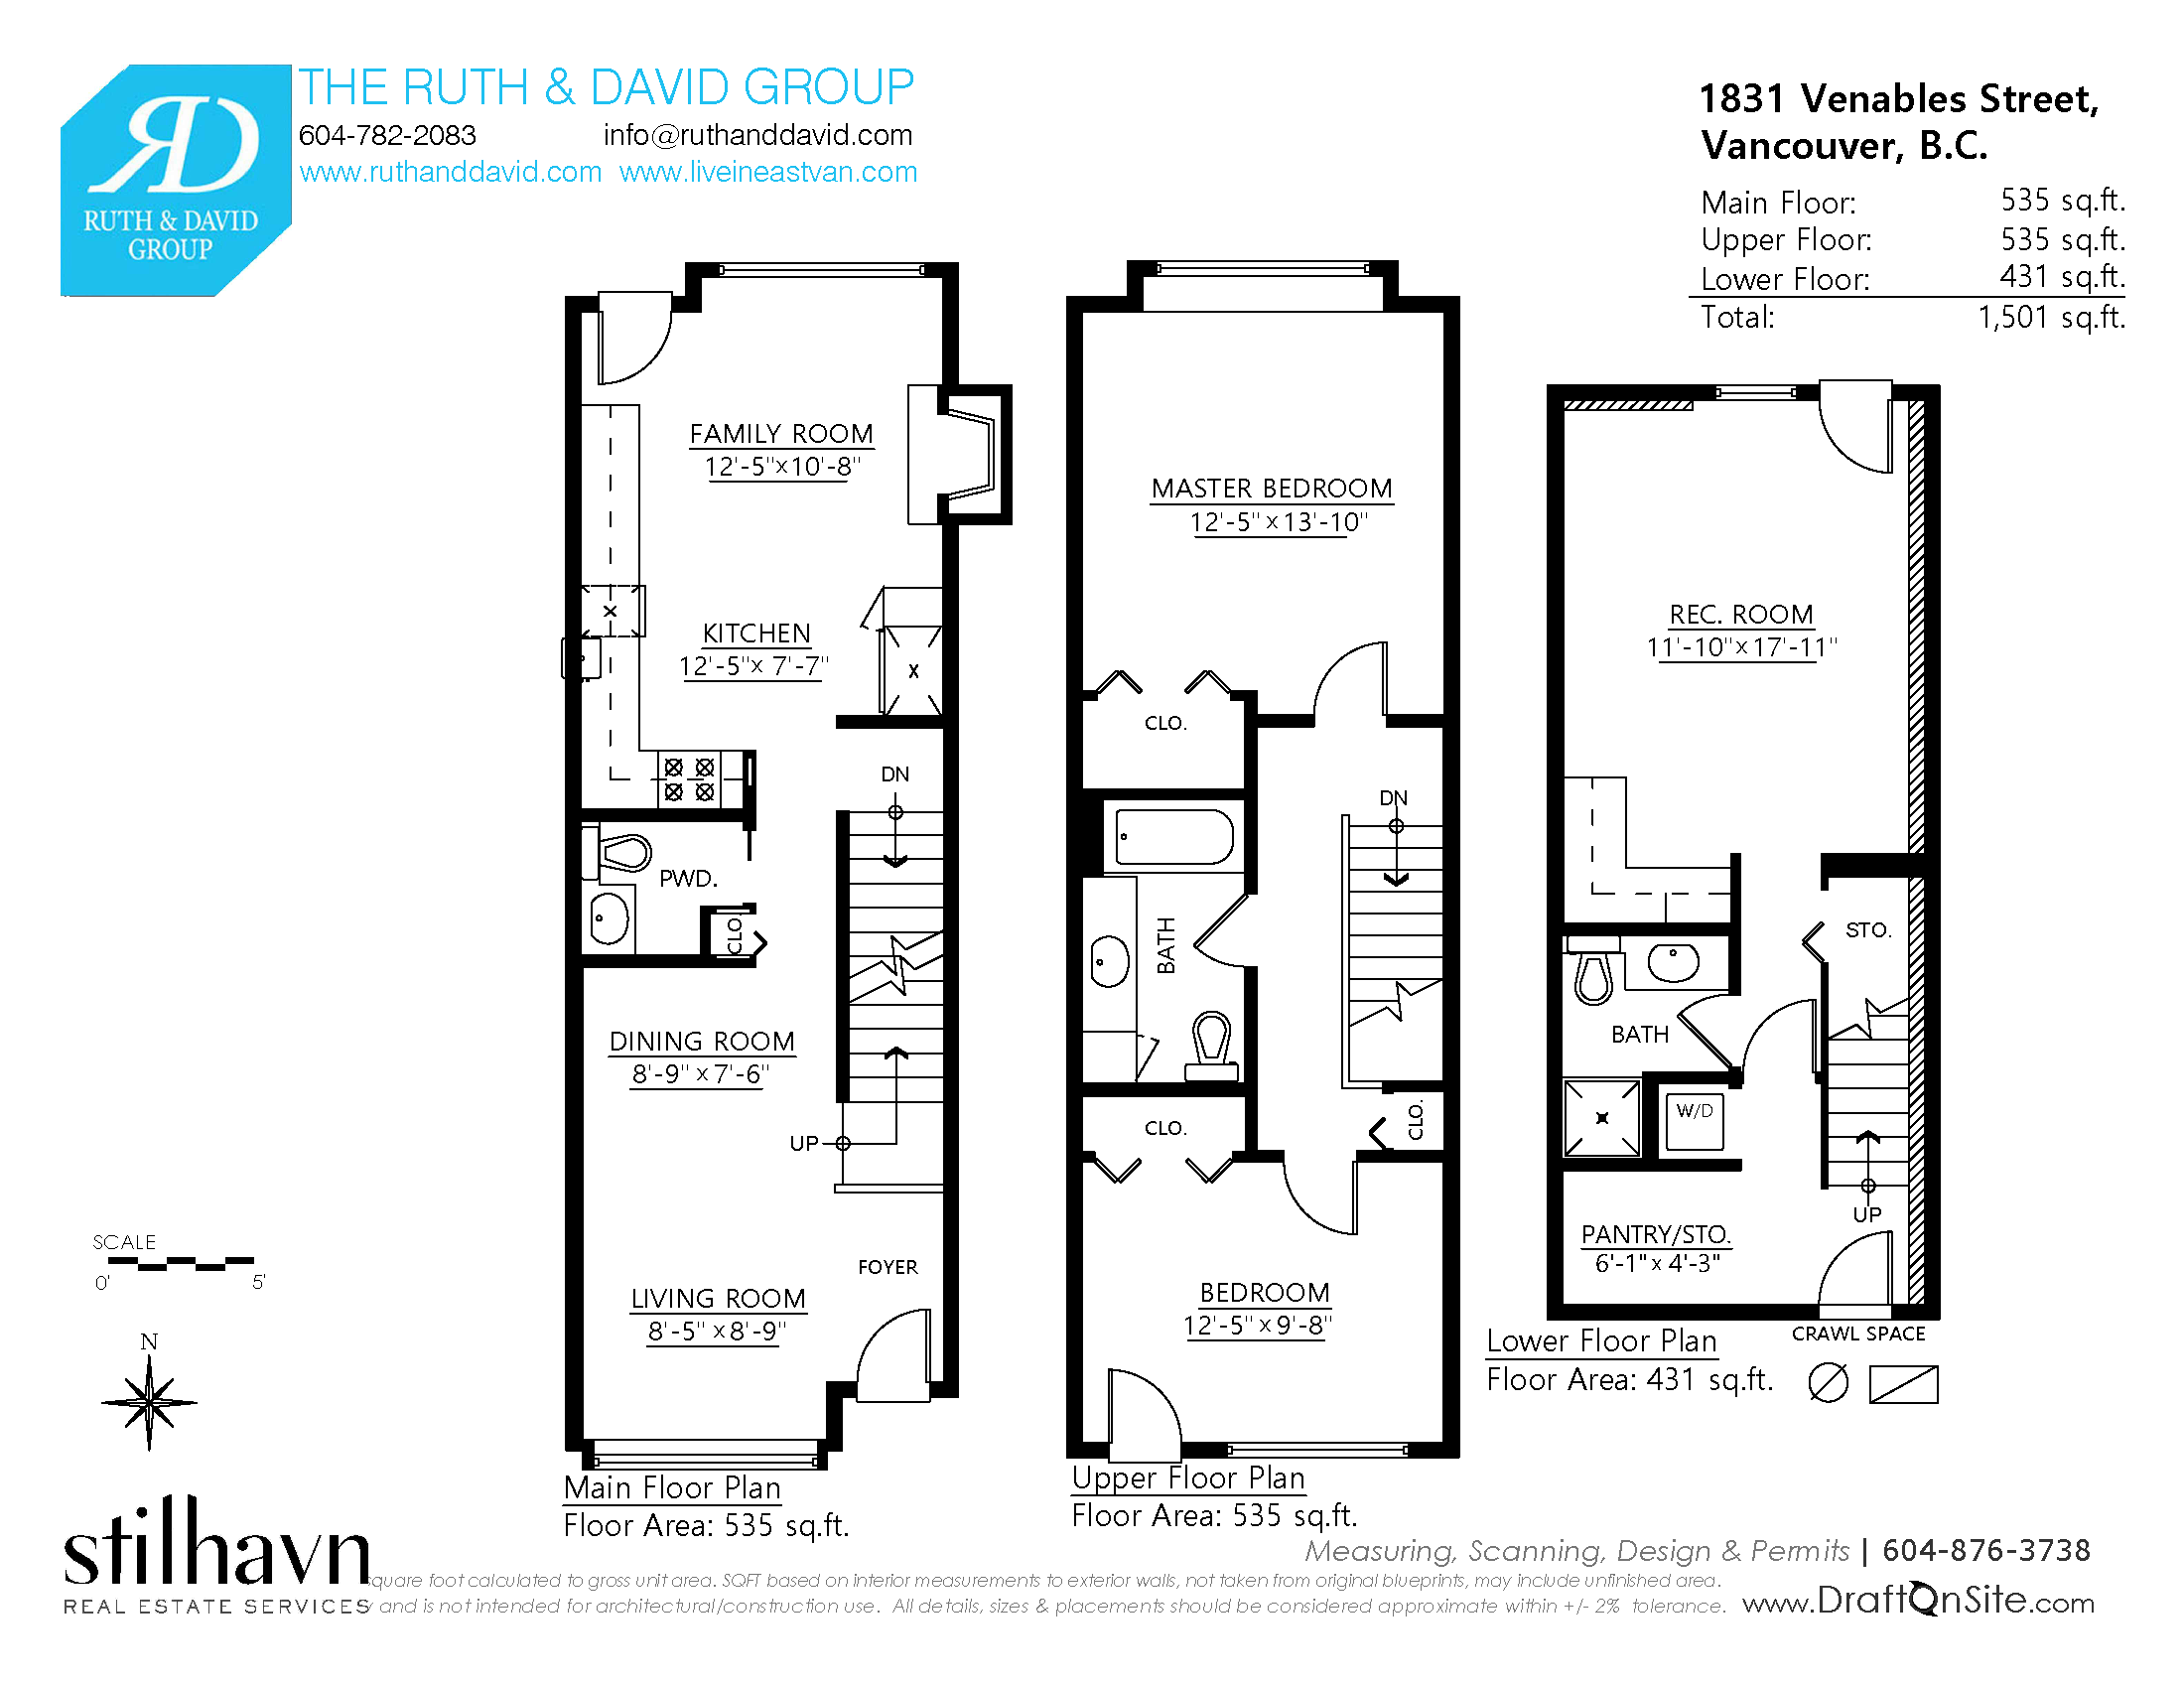 Swell 1831 Venables Floor Plan Old Ruth And David Download Free Architecture Designs Rallybritishbridgeorg